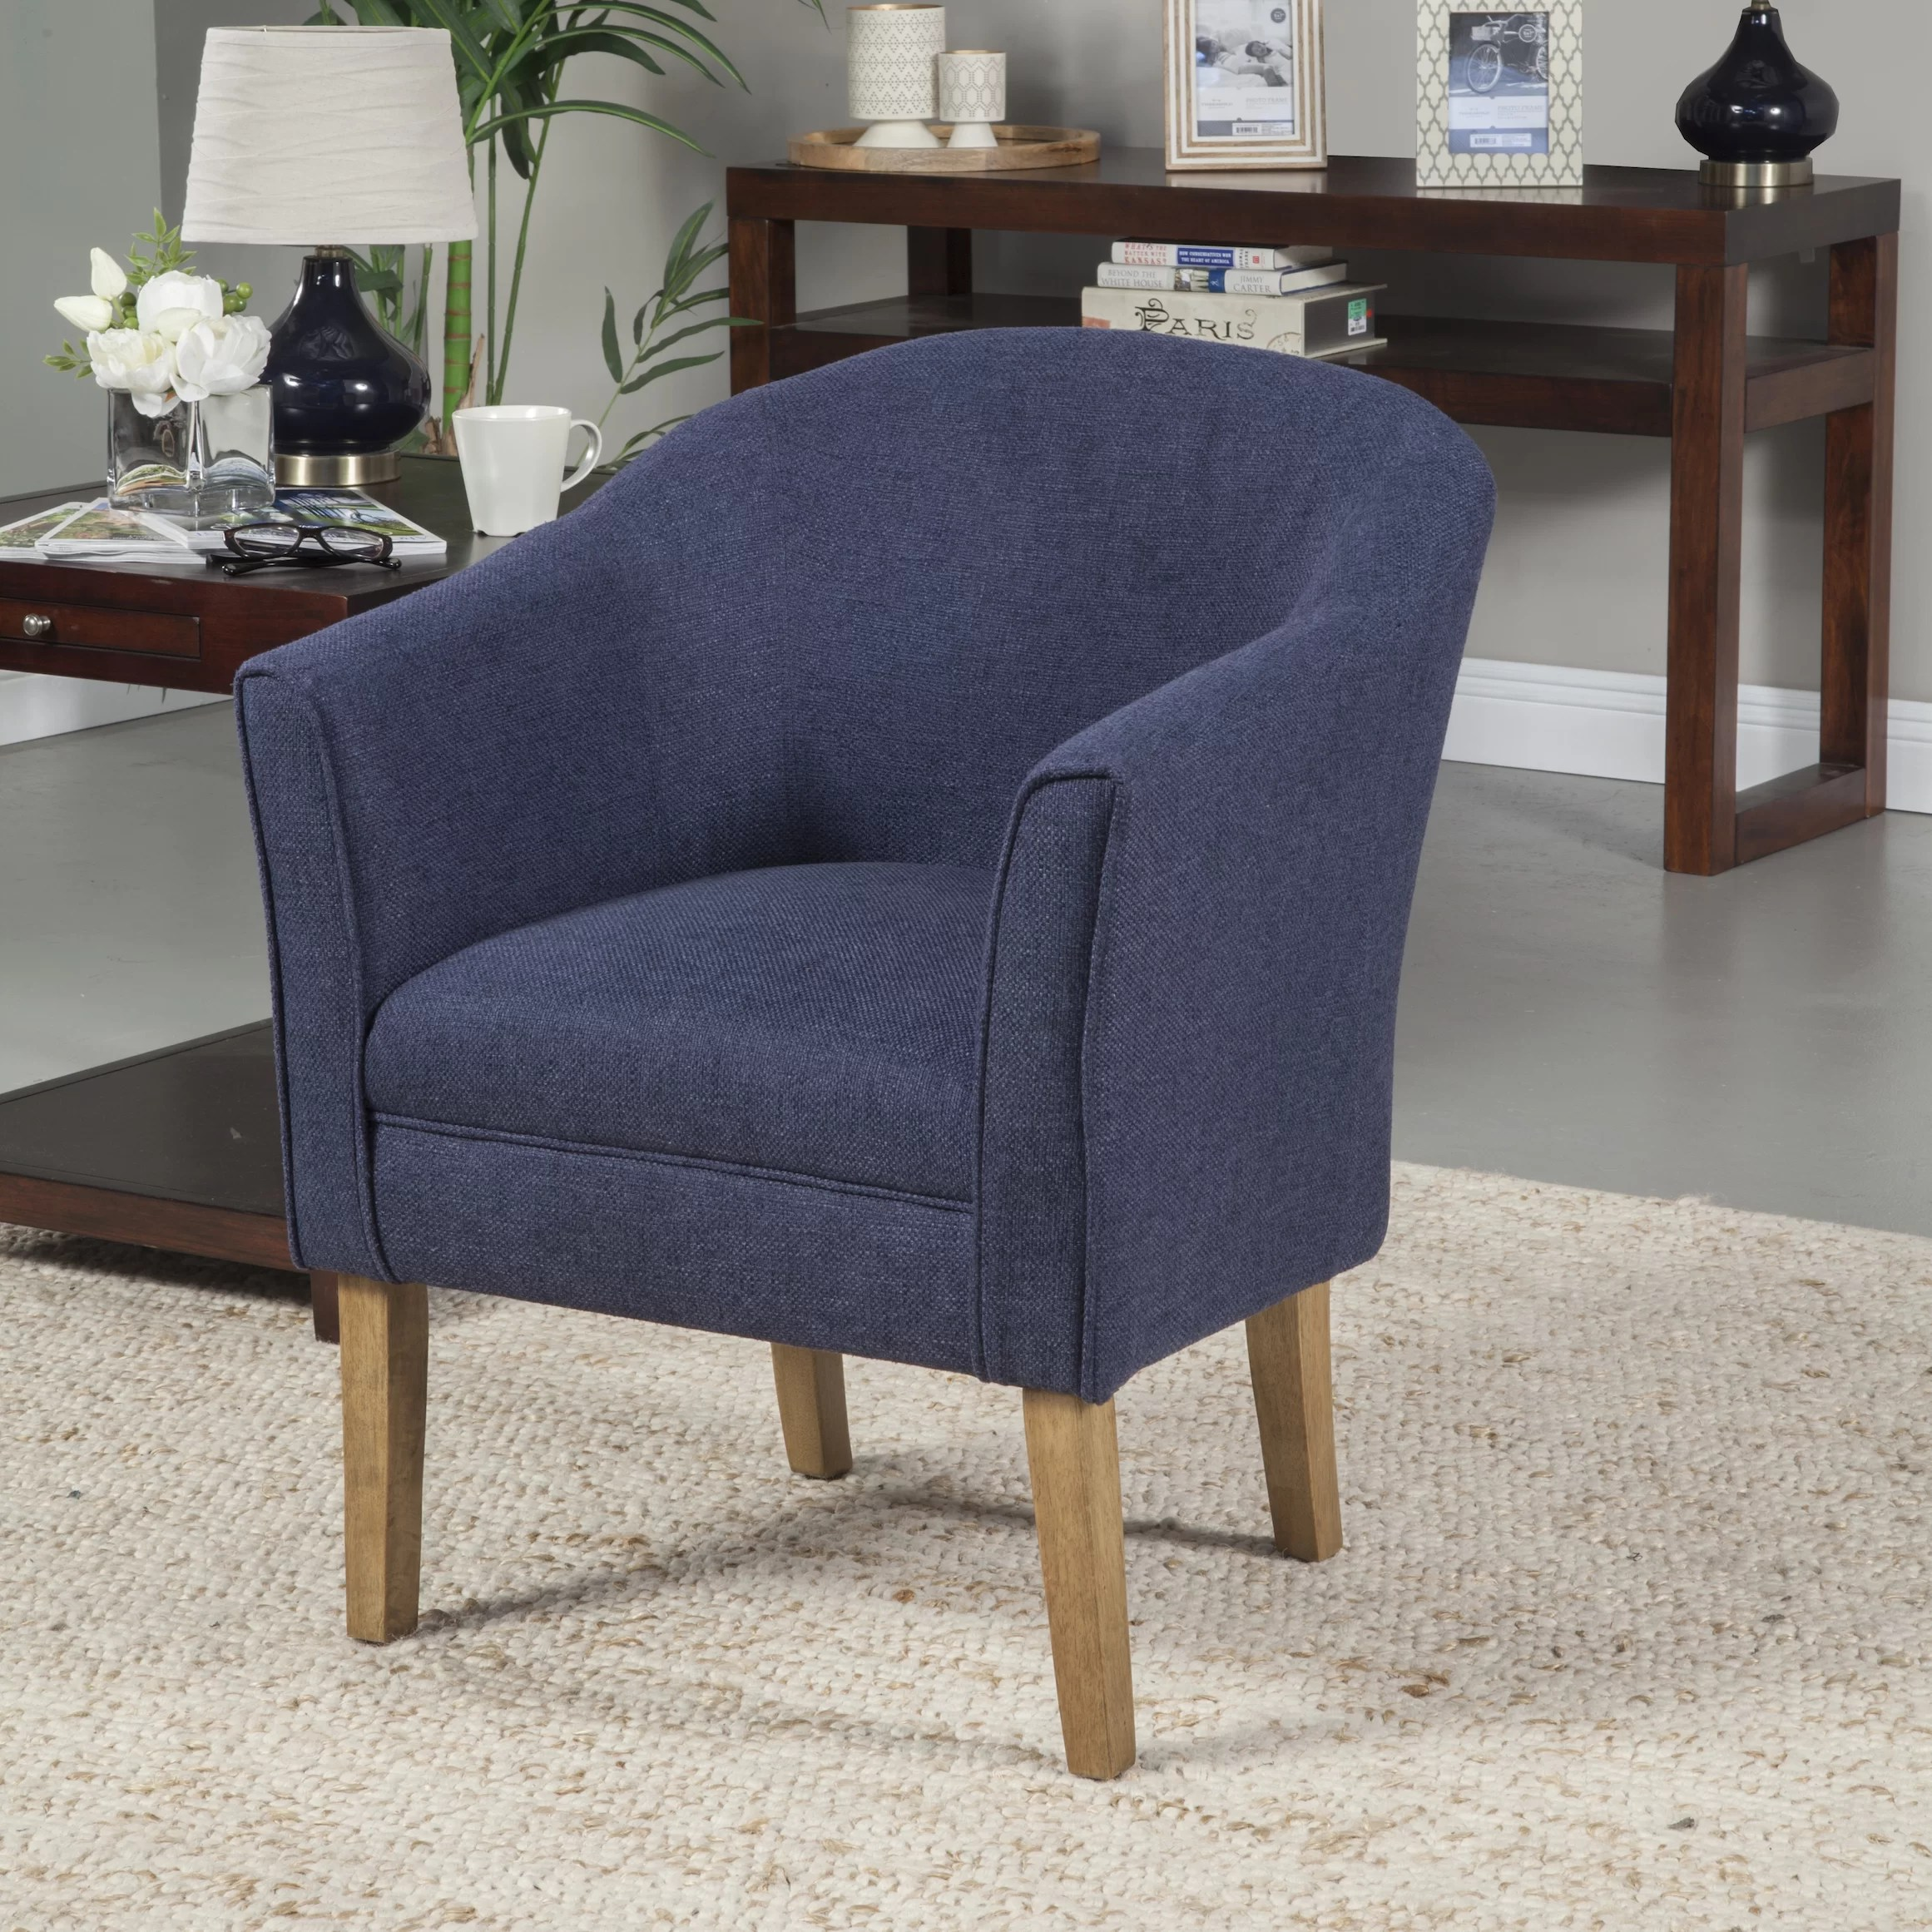 Barrell Chair Homepop Upholstered Barrel Chair And Reviews Wayfair